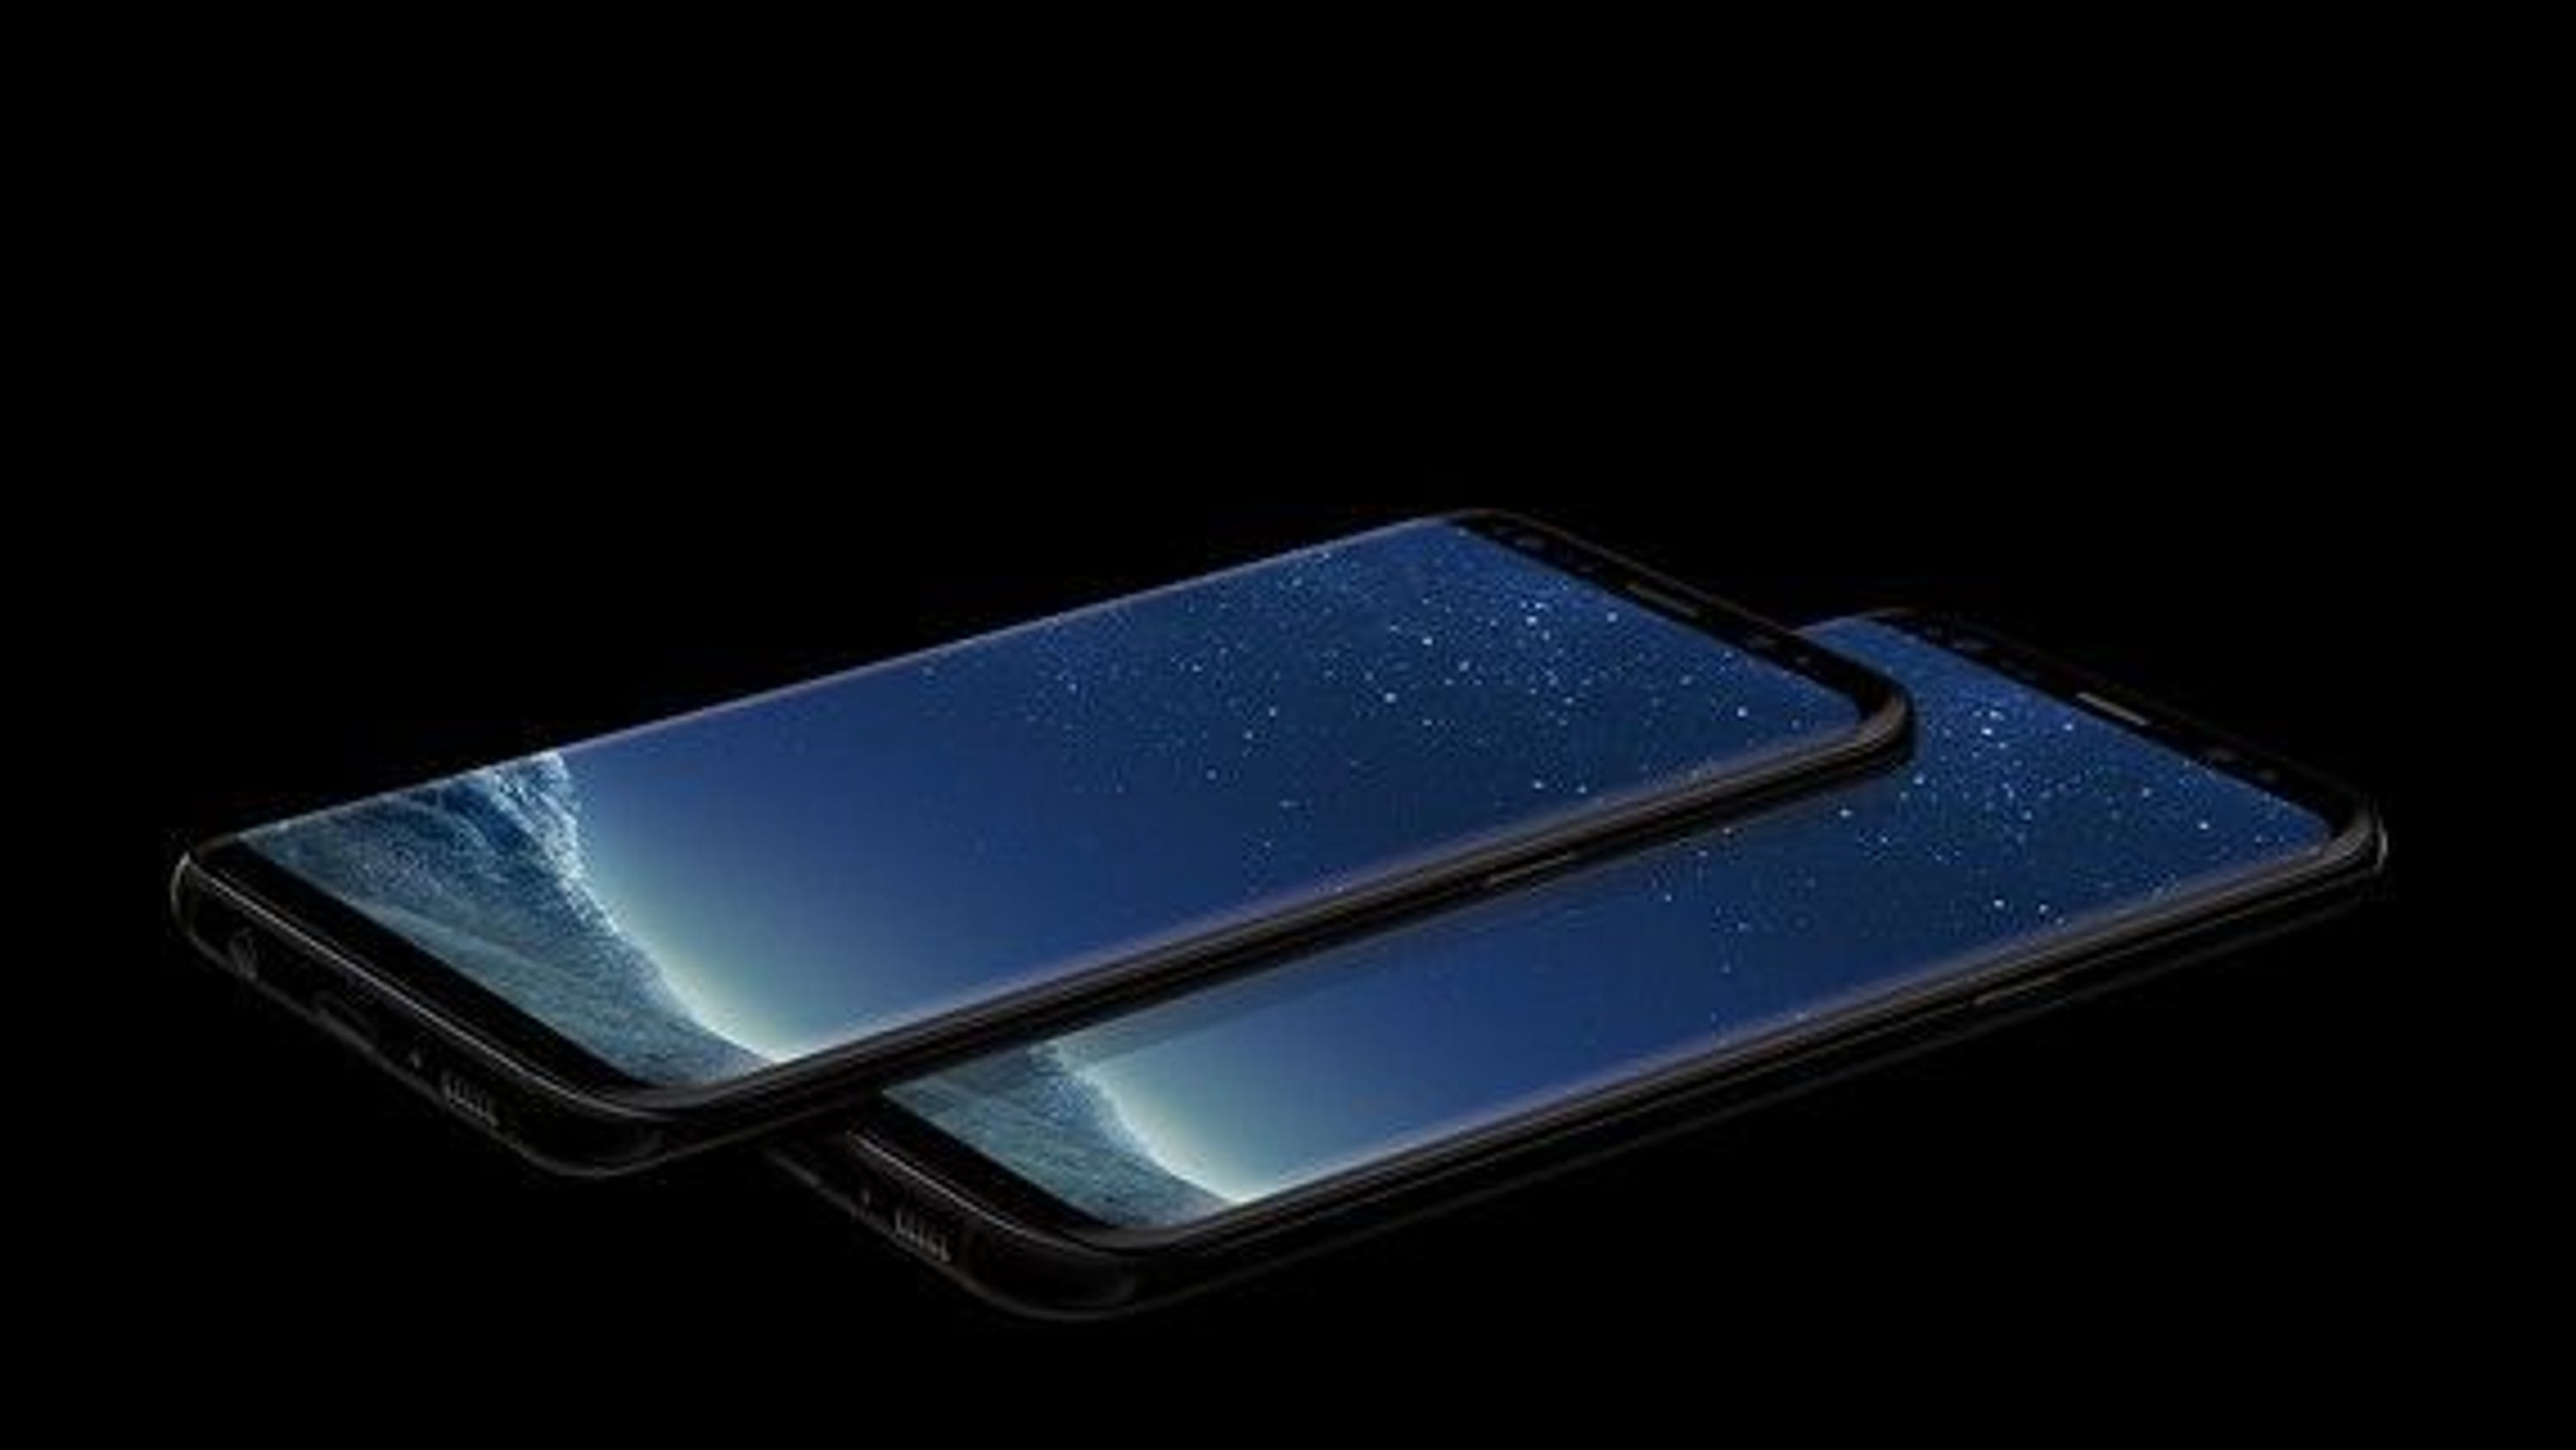 Here's what we expect to see in Samsung's Galaxy S9